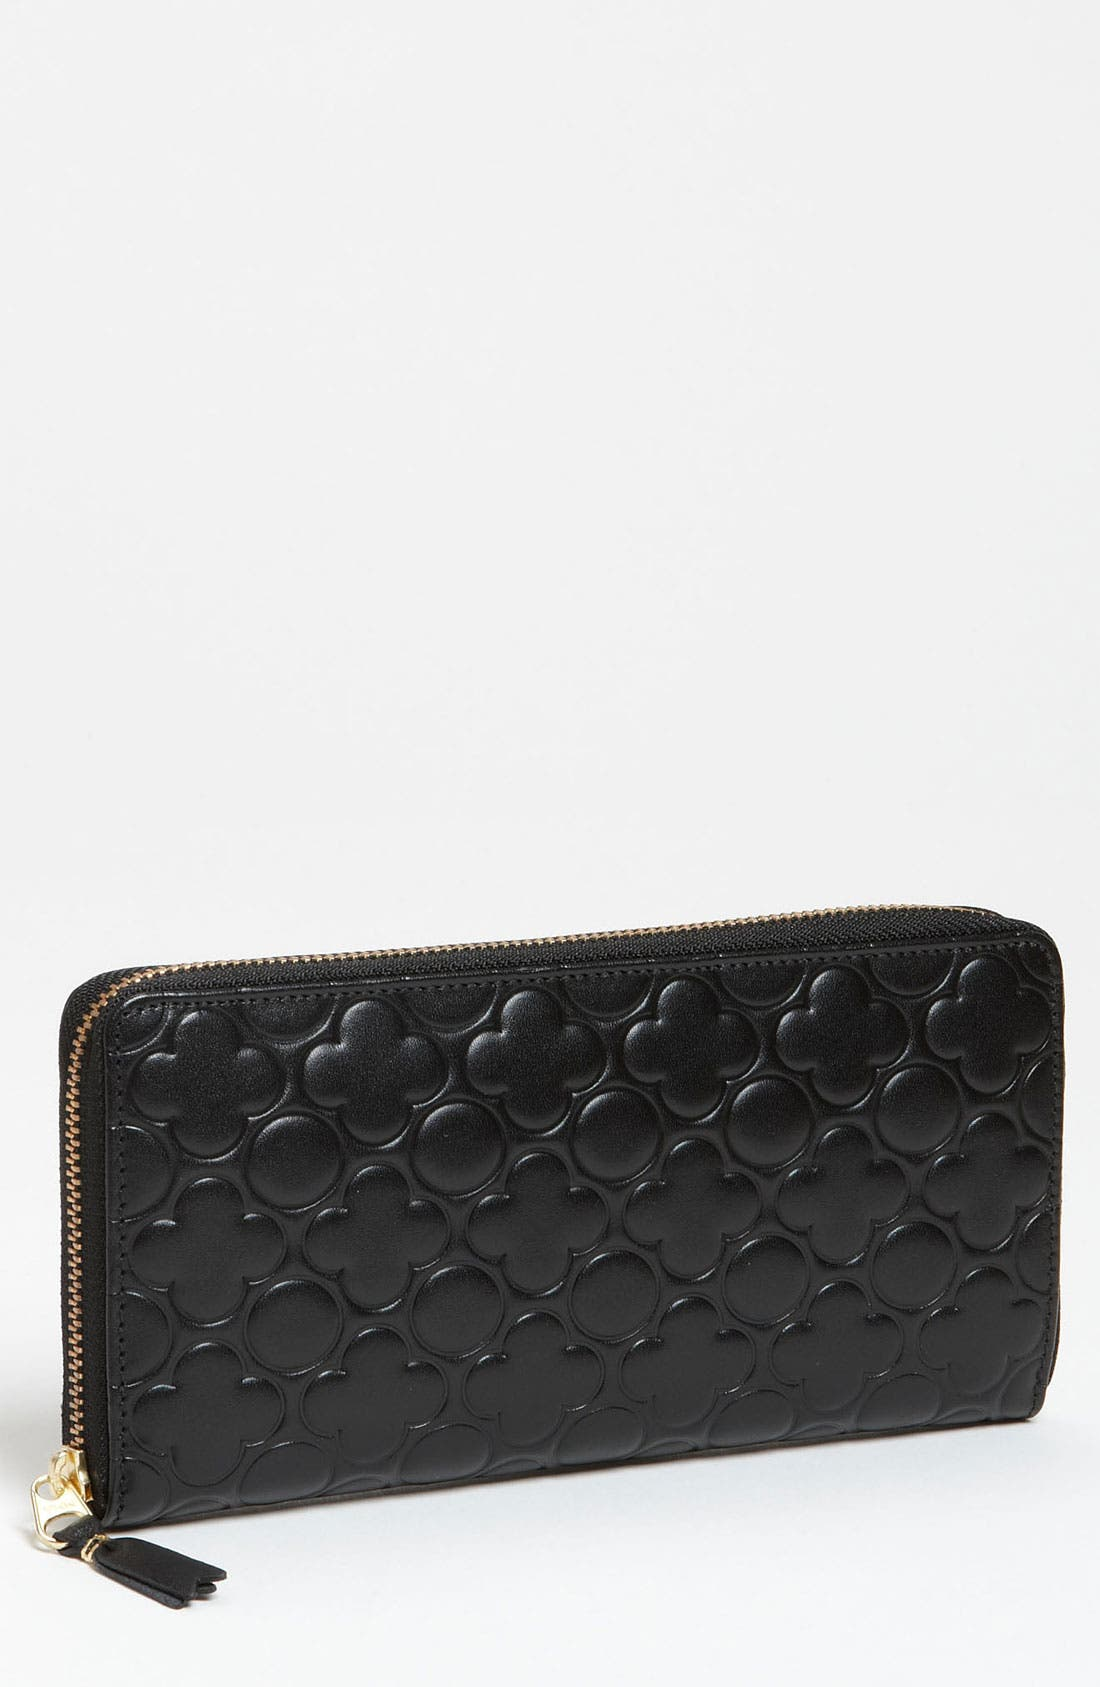 Main Image - Comme des Garçons Embossed Clover Continental Long Wallet